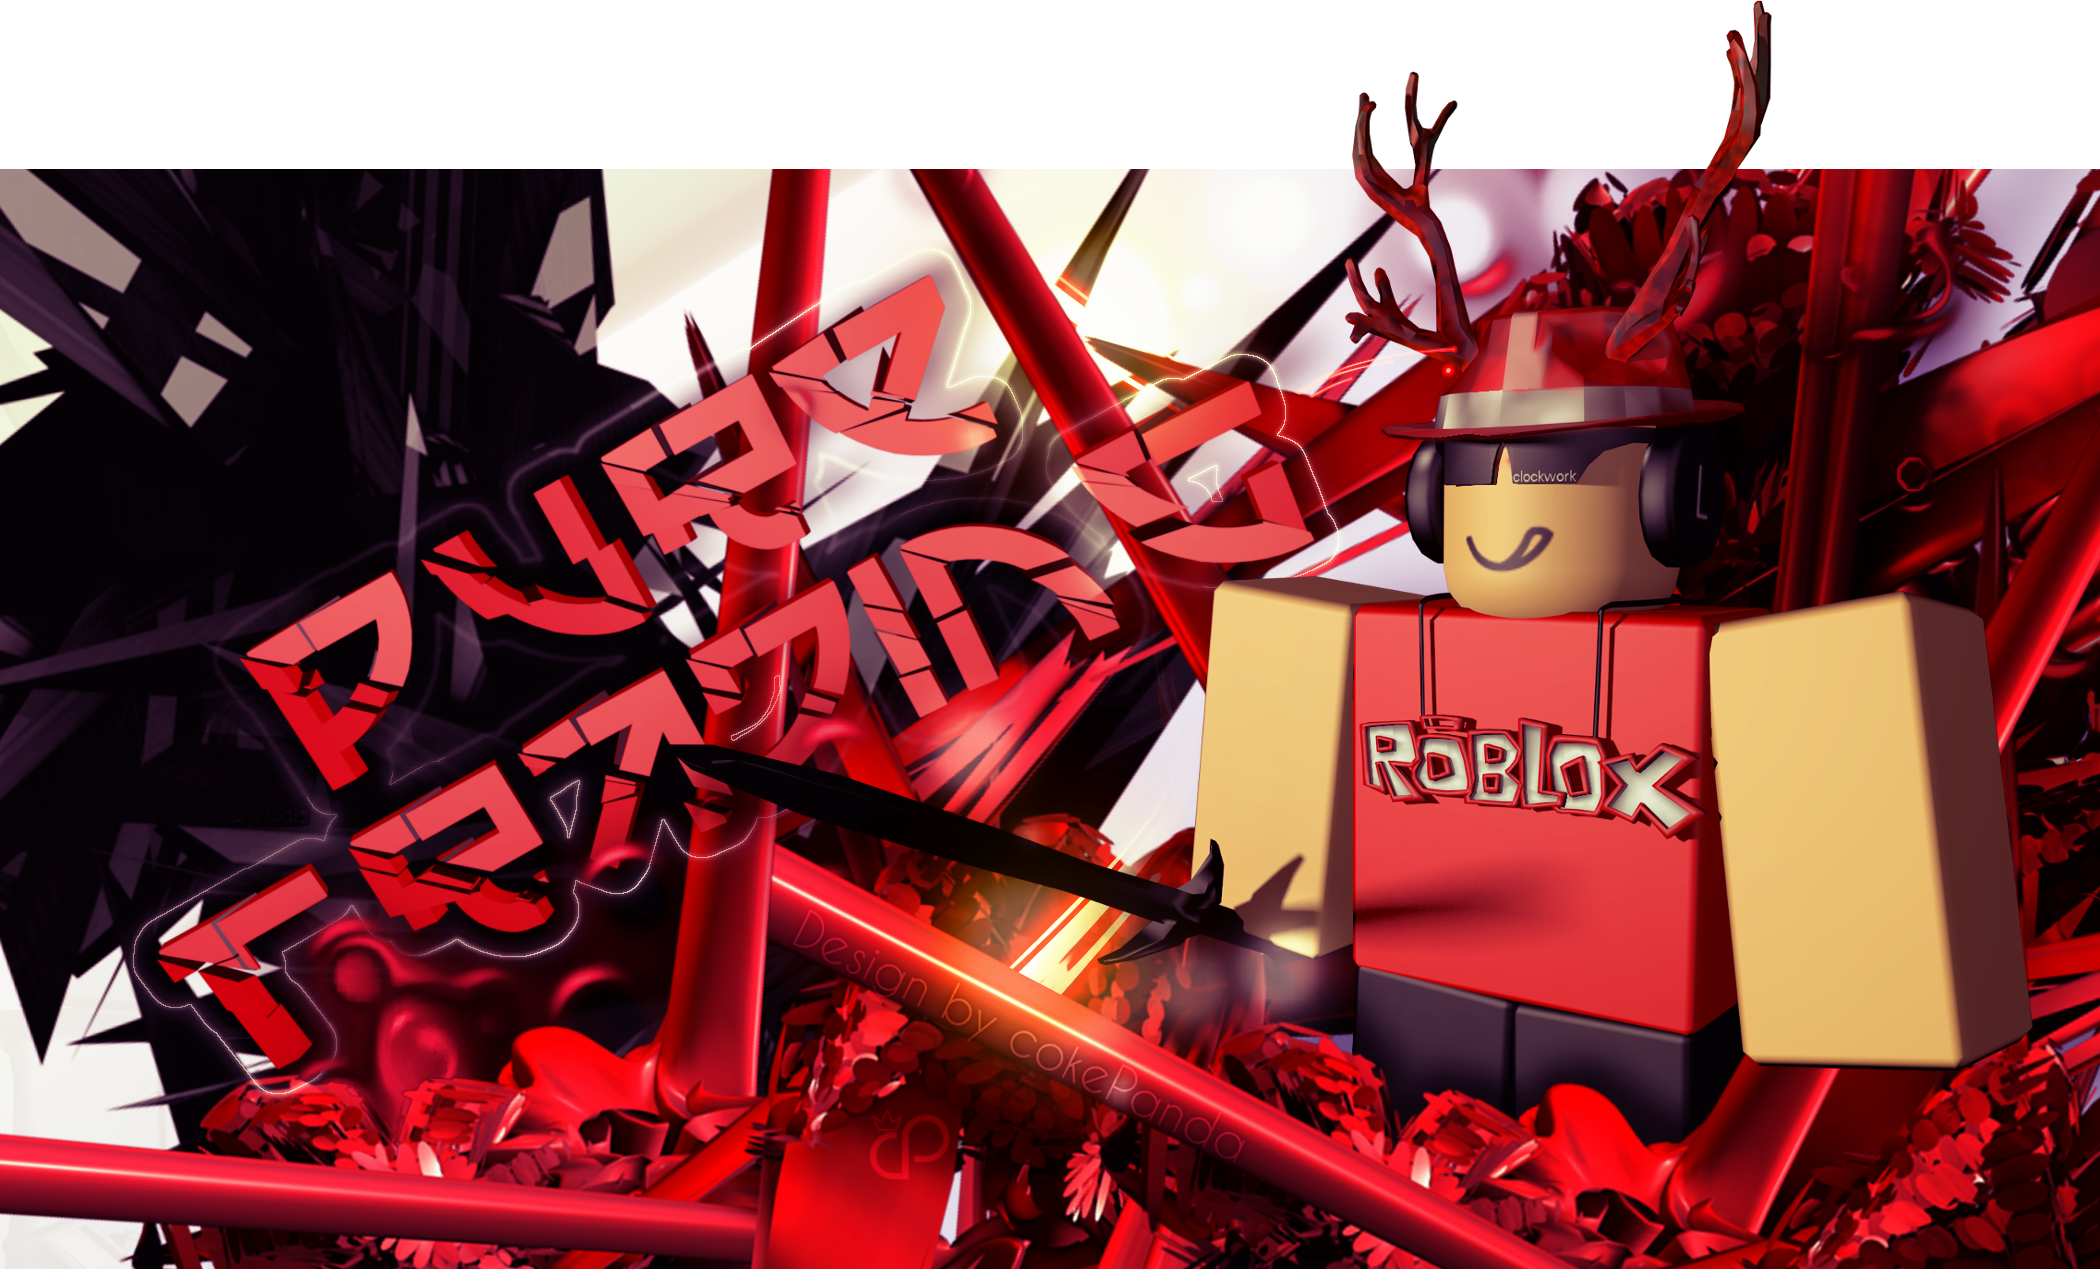 Roblox Puretrading Thumbnail Design By Thisiscamel On Deviantart